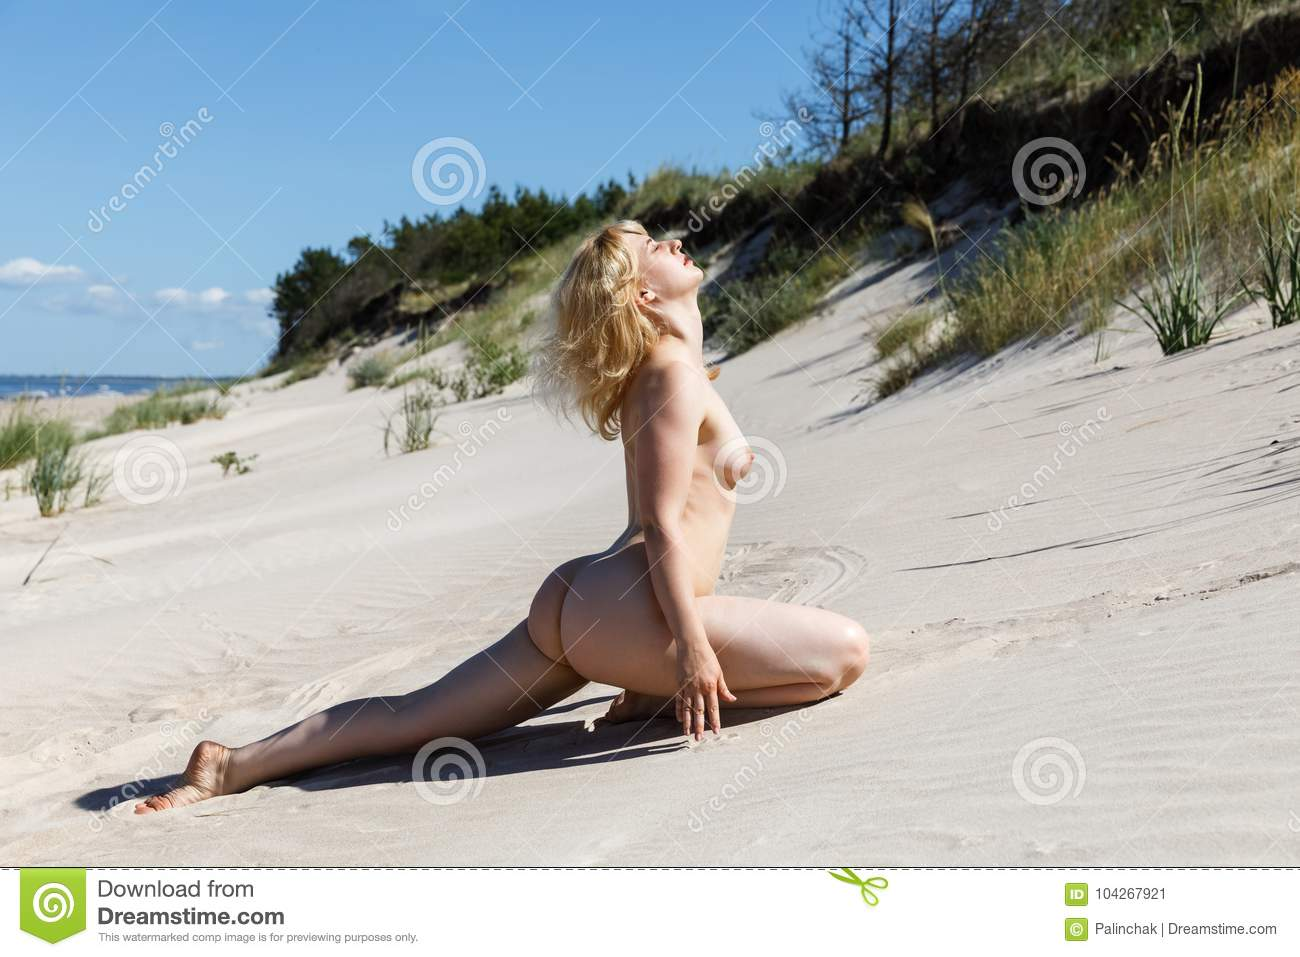 Girl big boobs nude sunbath